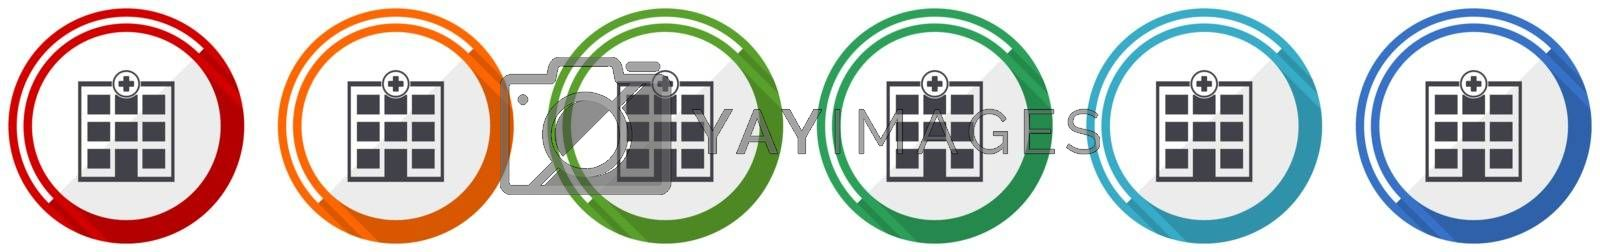 Hospital building icon set, flat design vector illustration in 6 colors options for webdesign and mobile applications